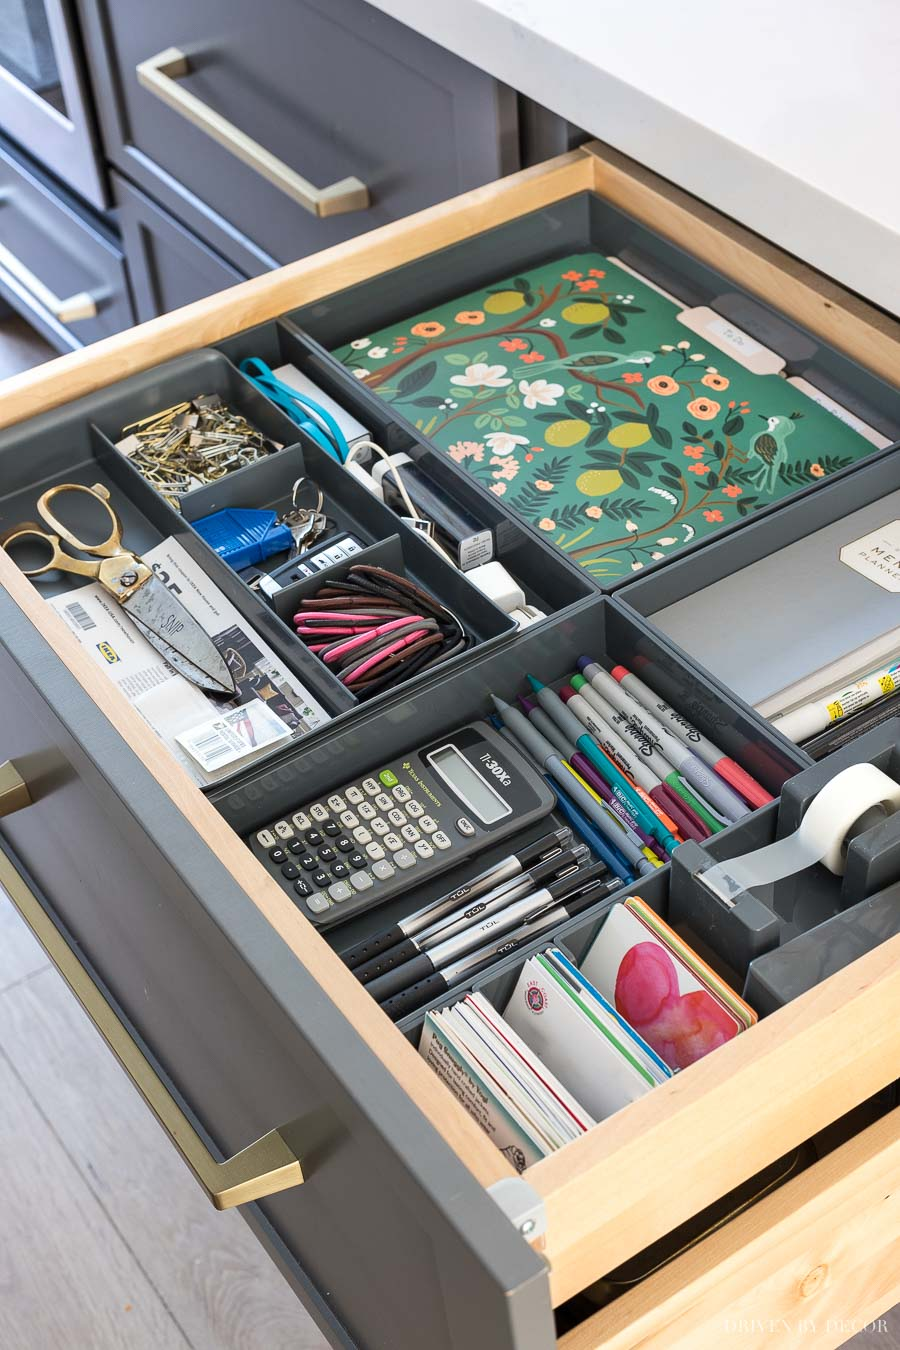 Want desk drawer organization ideas? This post has tons of them including details on these dividers!